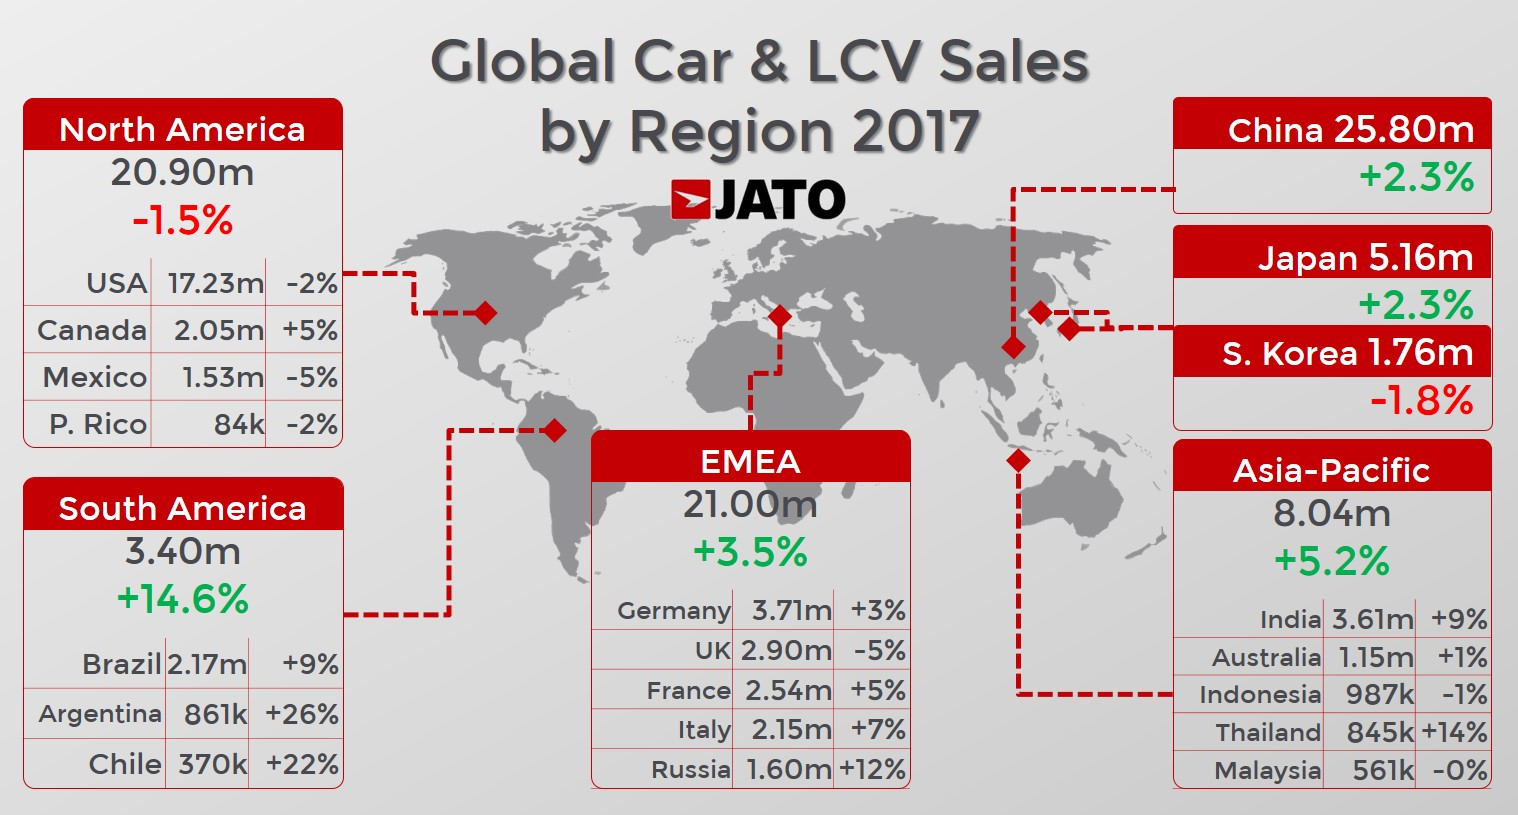 Global Car Sales Up By 2 4 In 2017 Due To Soaring Demand